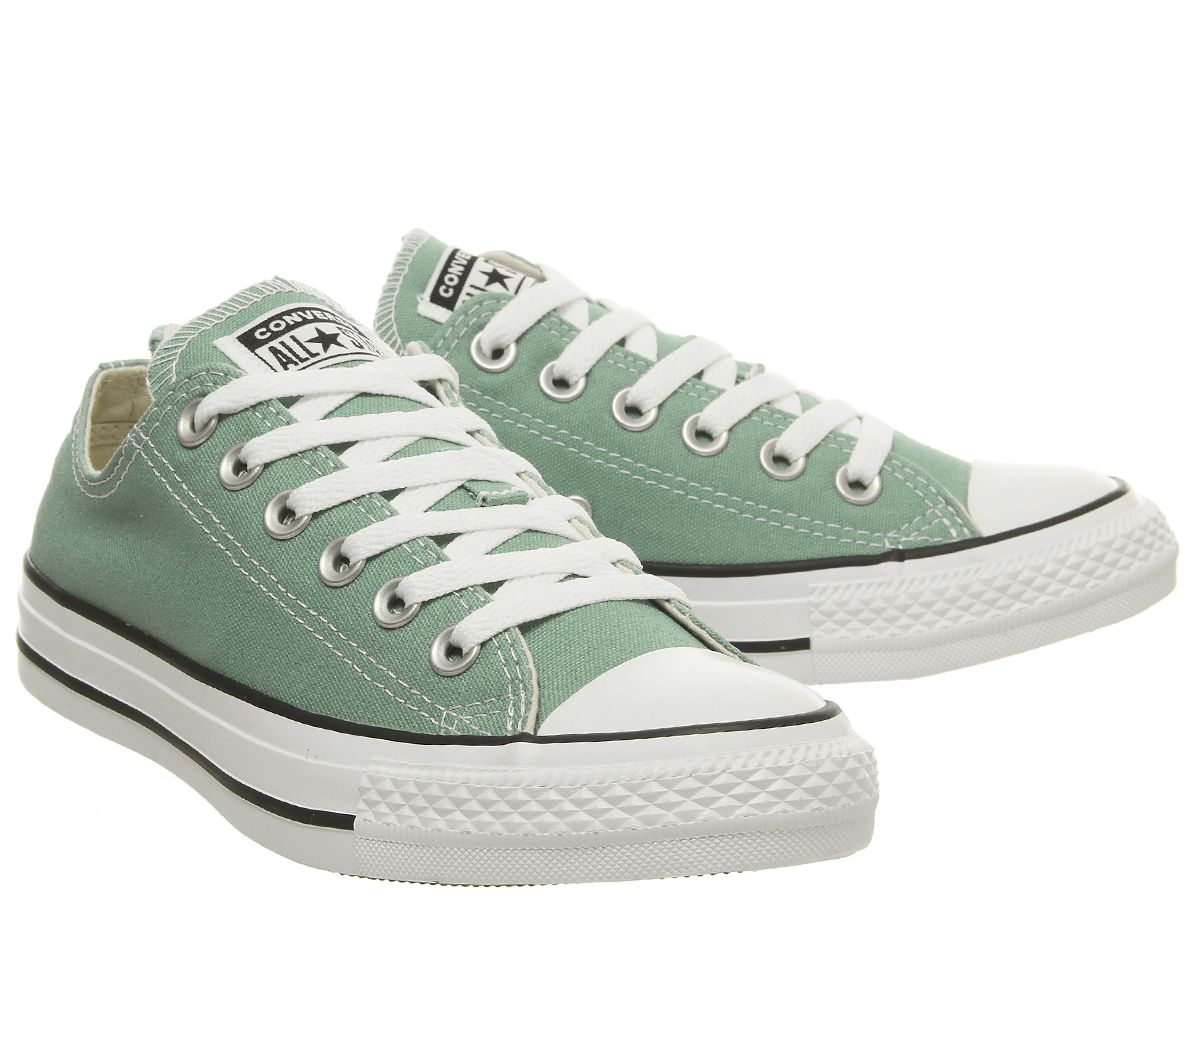 5fbcf2a9d6d4 Sentinel Mens Converse Converse All Star Low Trainers Mineral Teal Trainers  Shoes